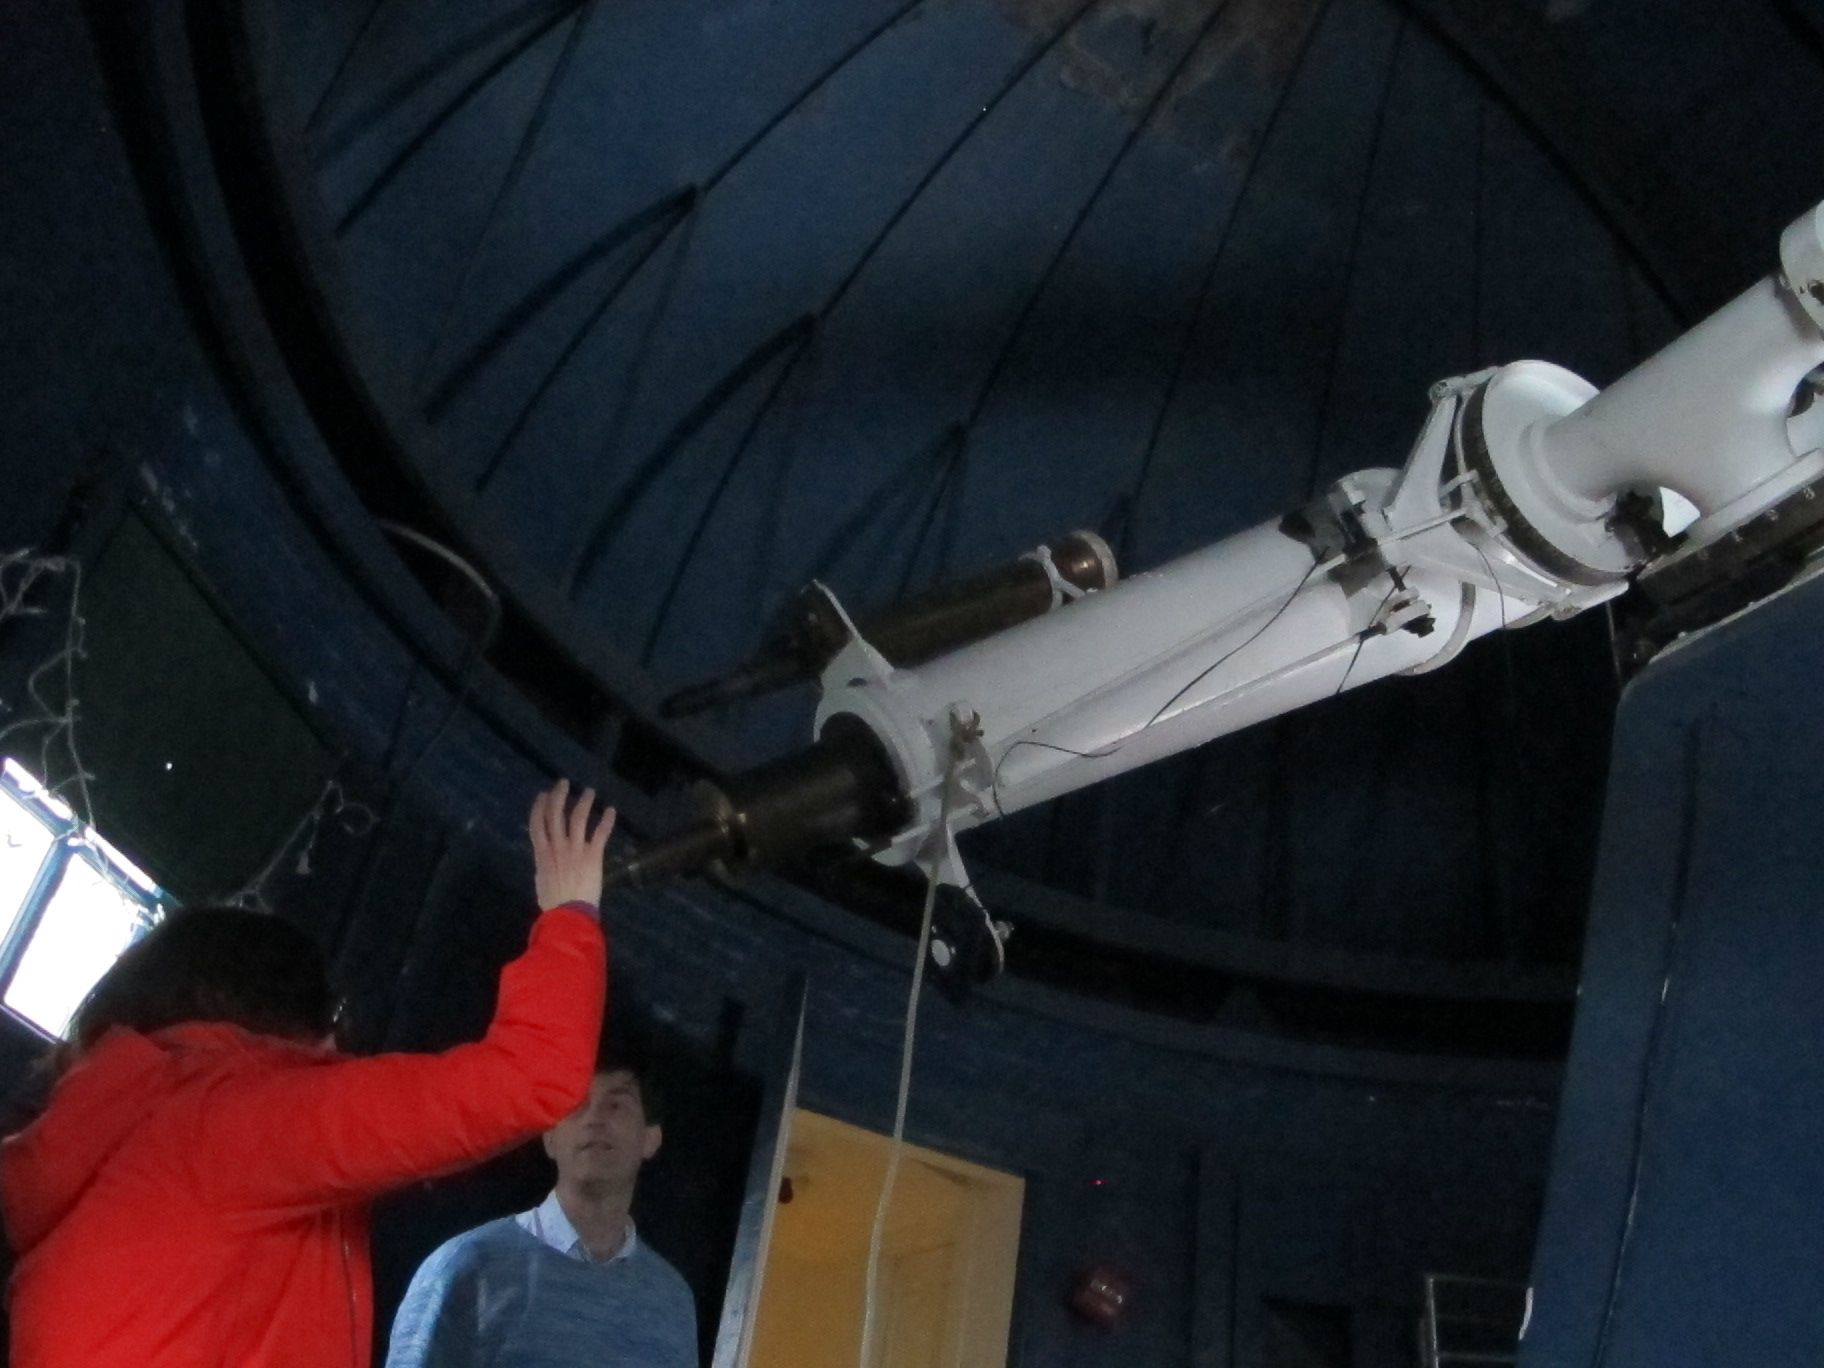 Miles Blencowe generously gave us a tour inside the observatory